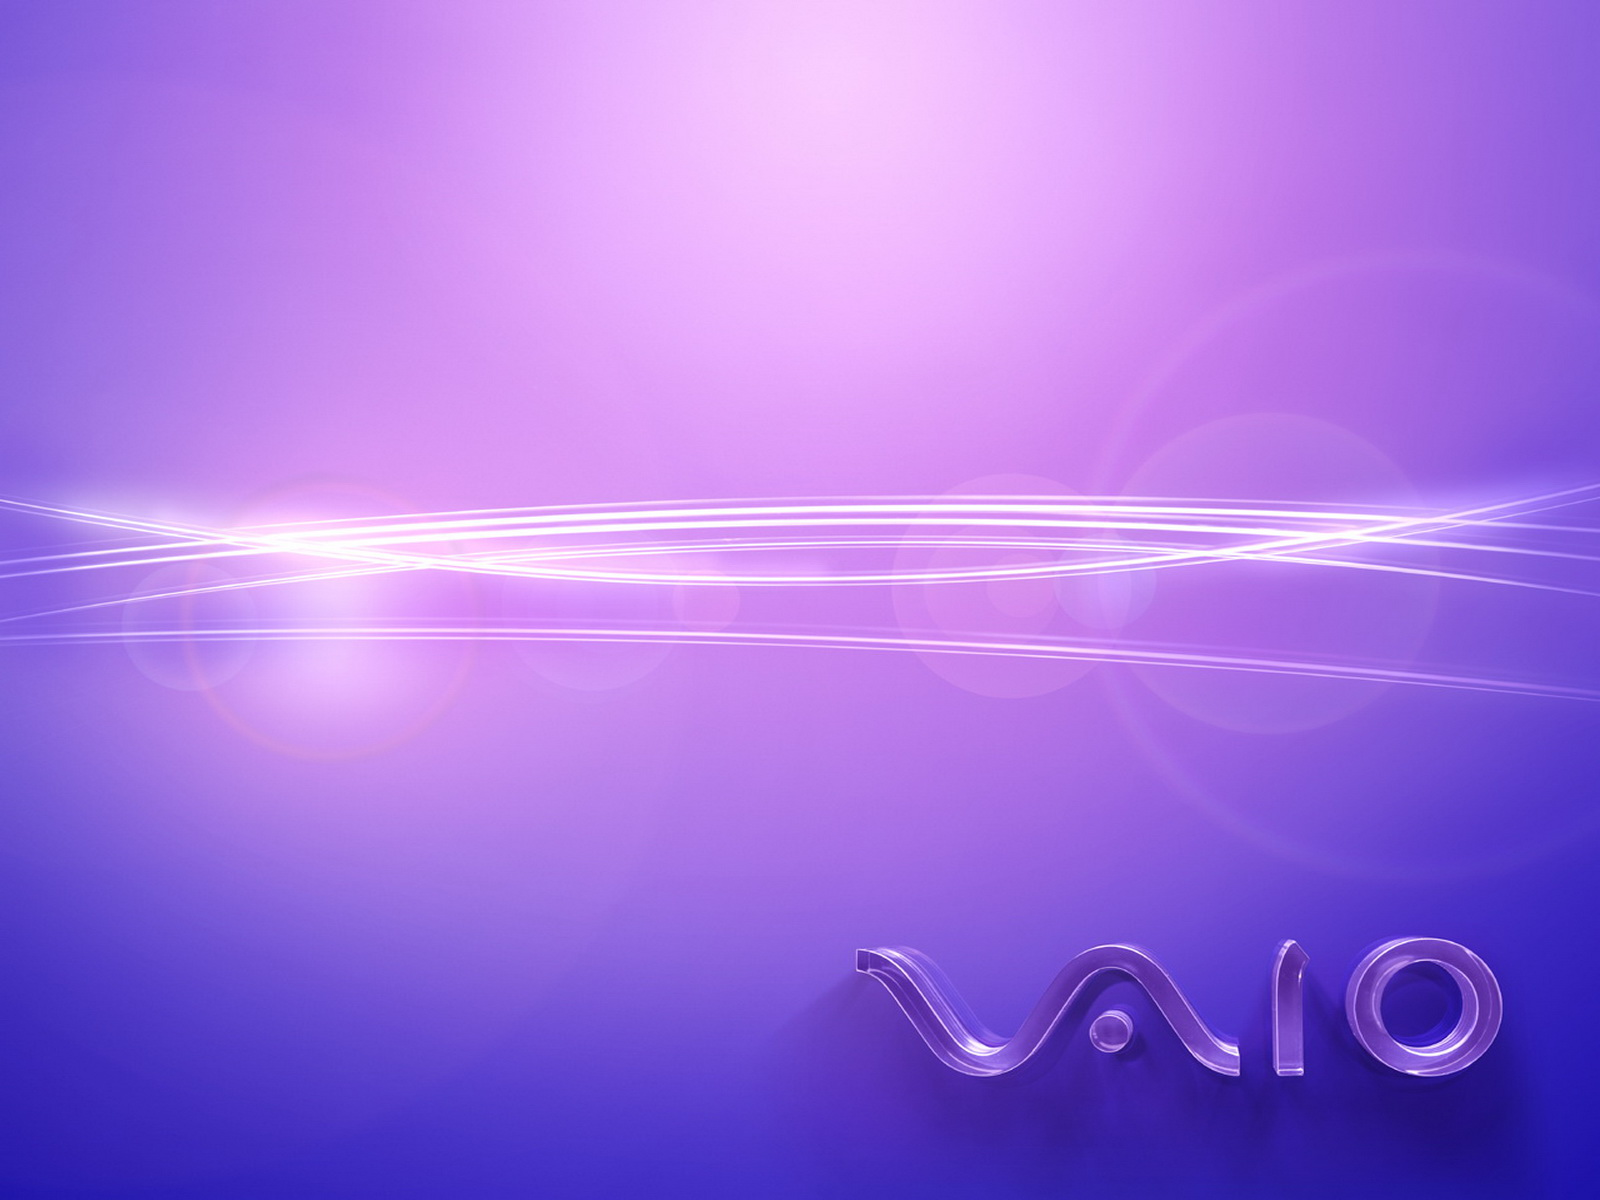 Sony VAIO 13 Wallpapers HD Wallpapers 1600x1200